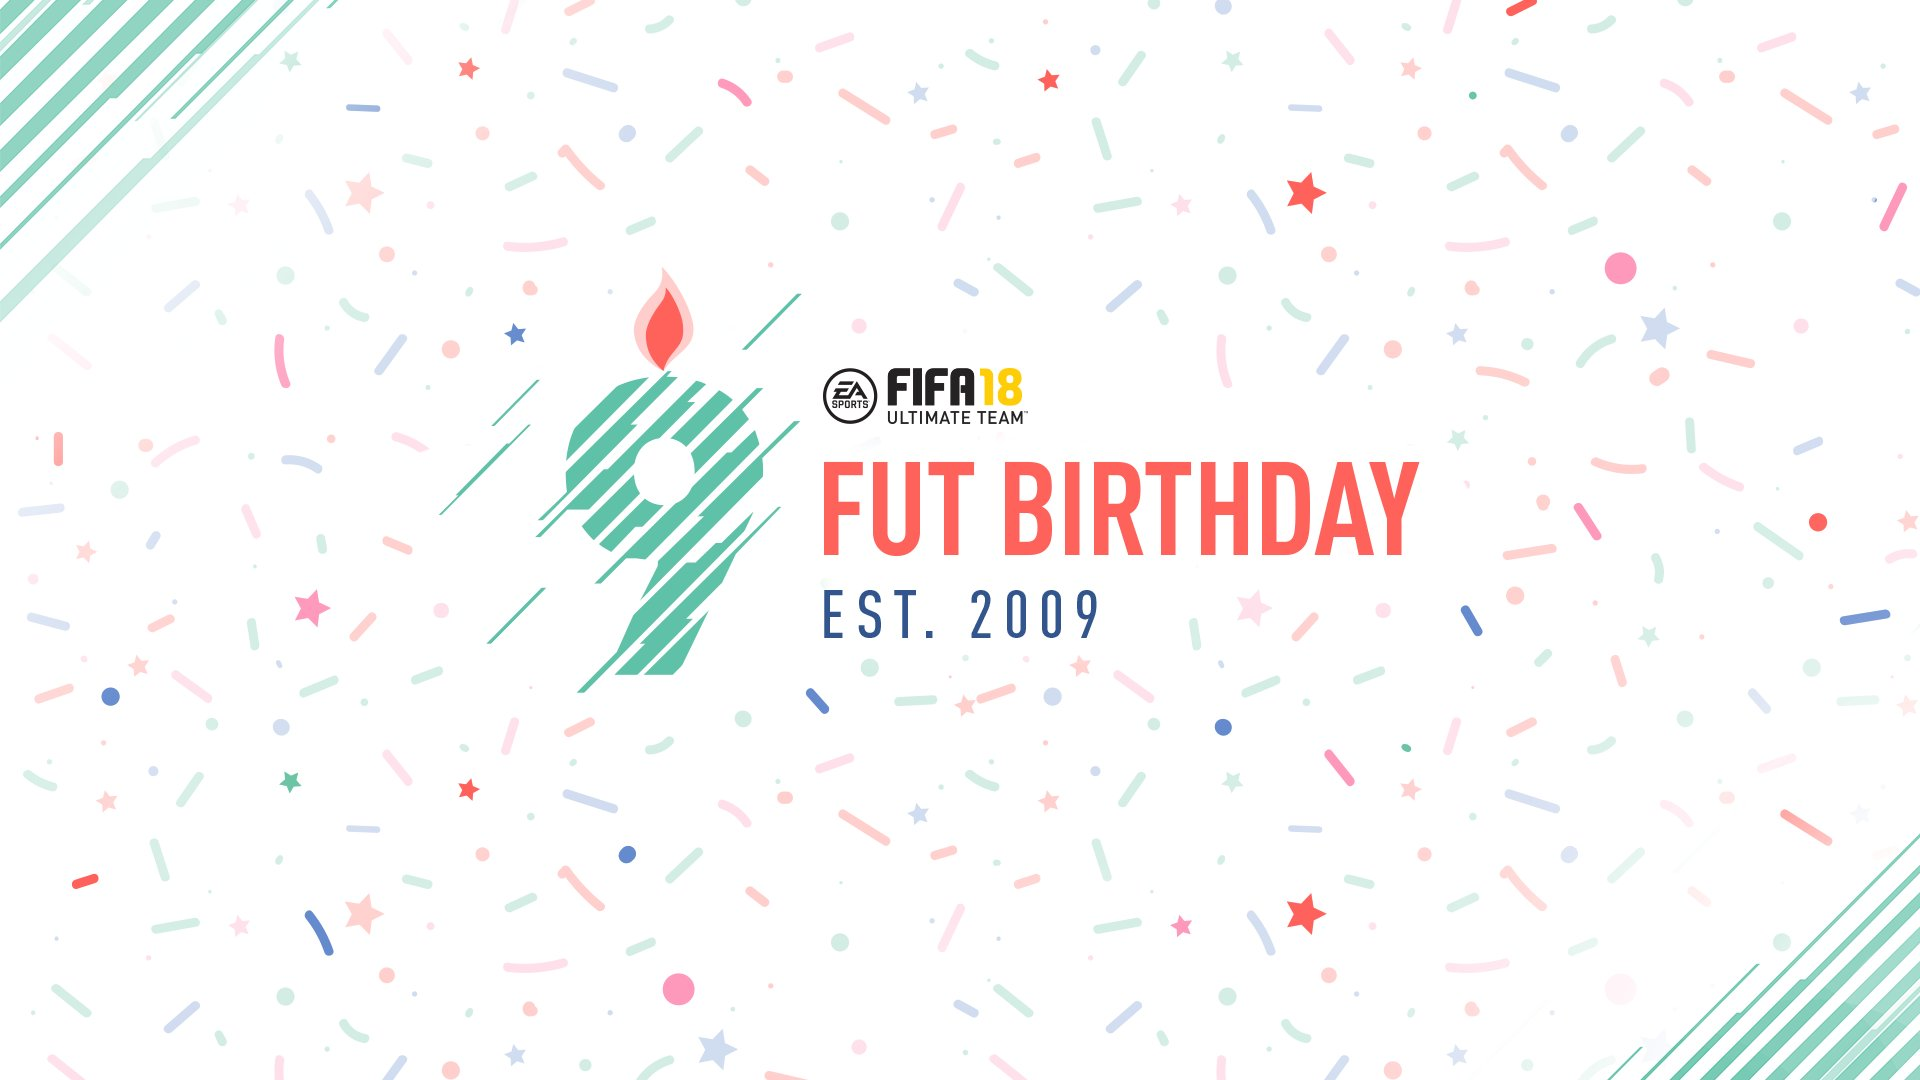 fut 18 fut birthday